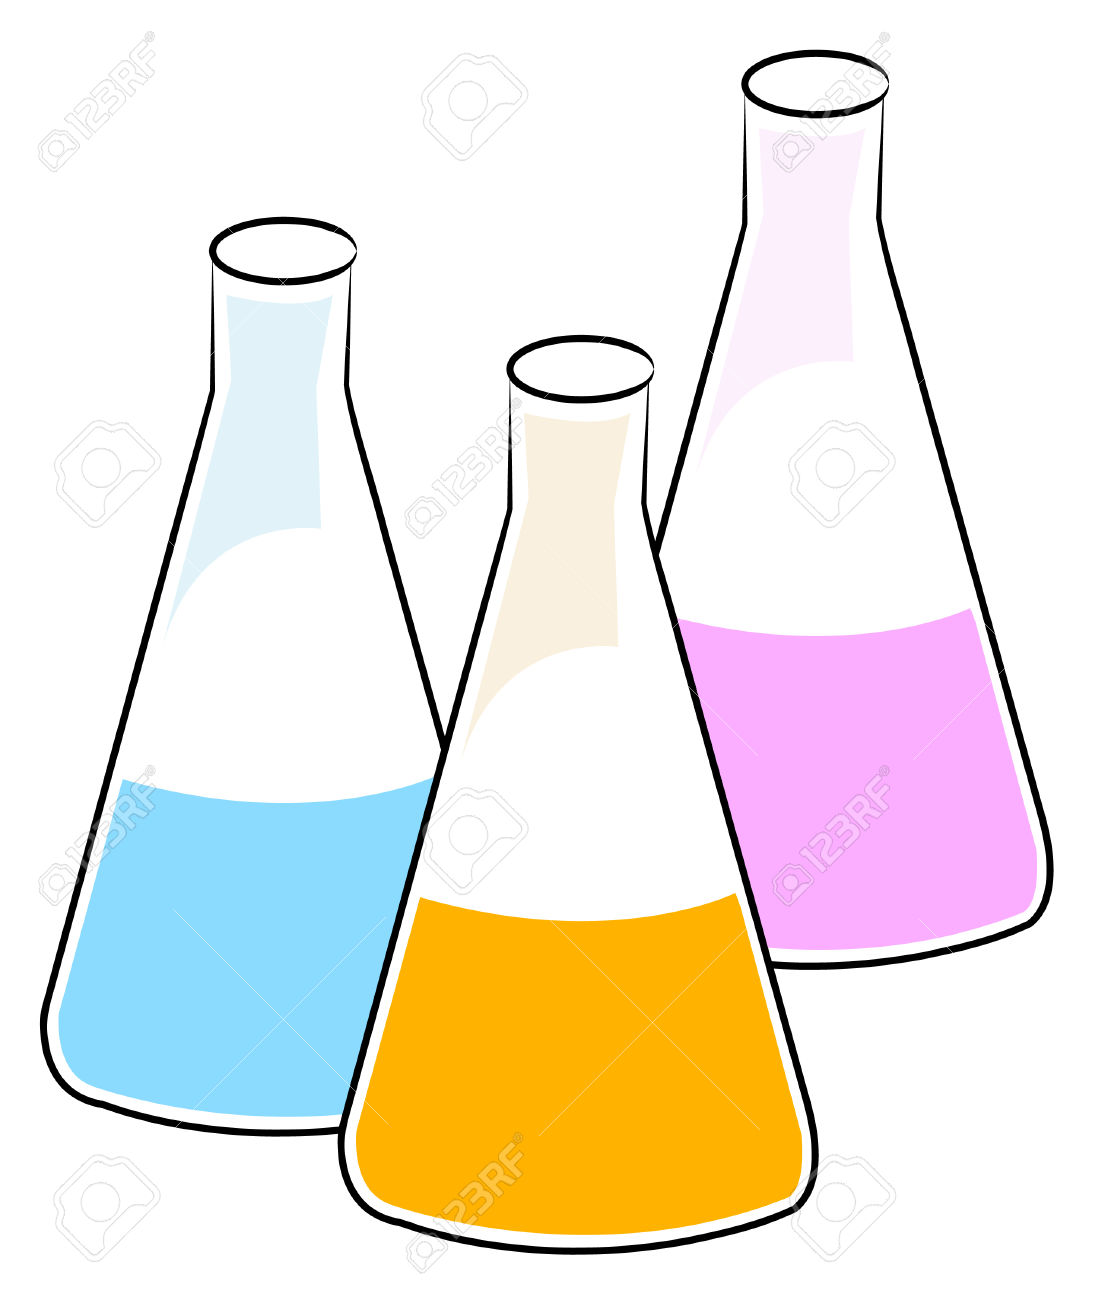 Chemical solution clipart.